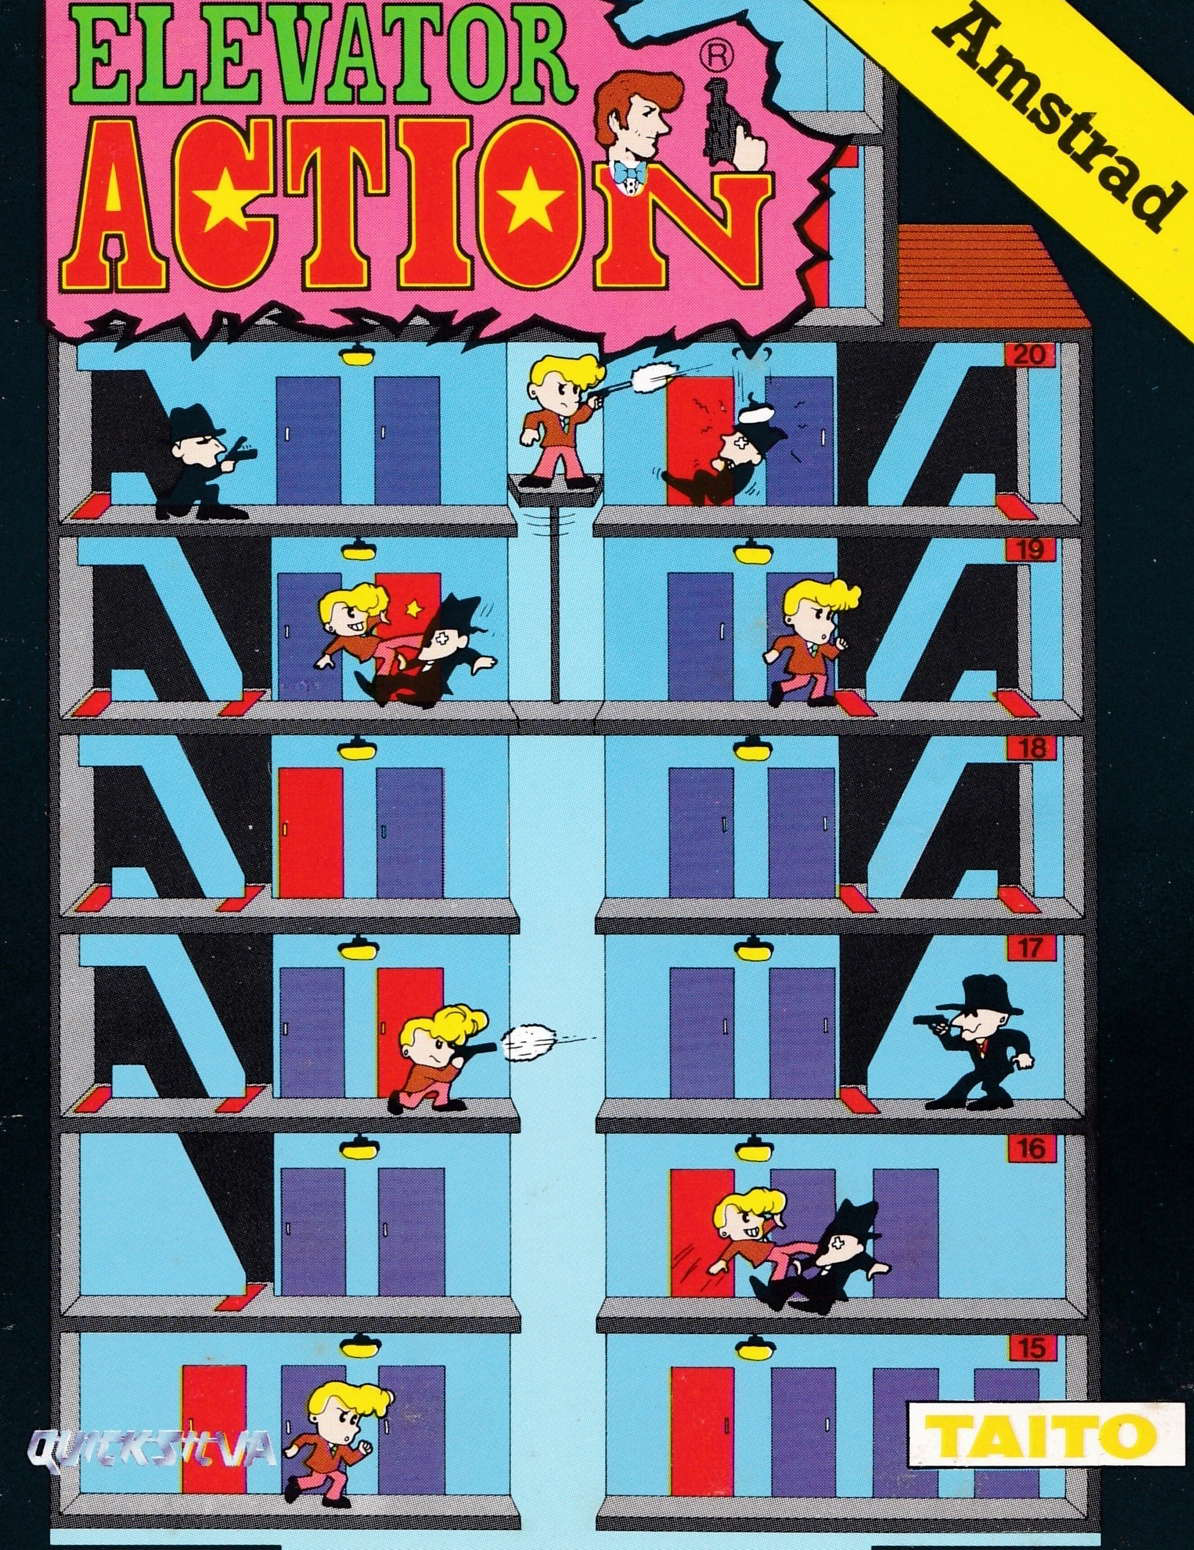 cover of the Amstrad CPC game Elevator Action  by GameBase CPC